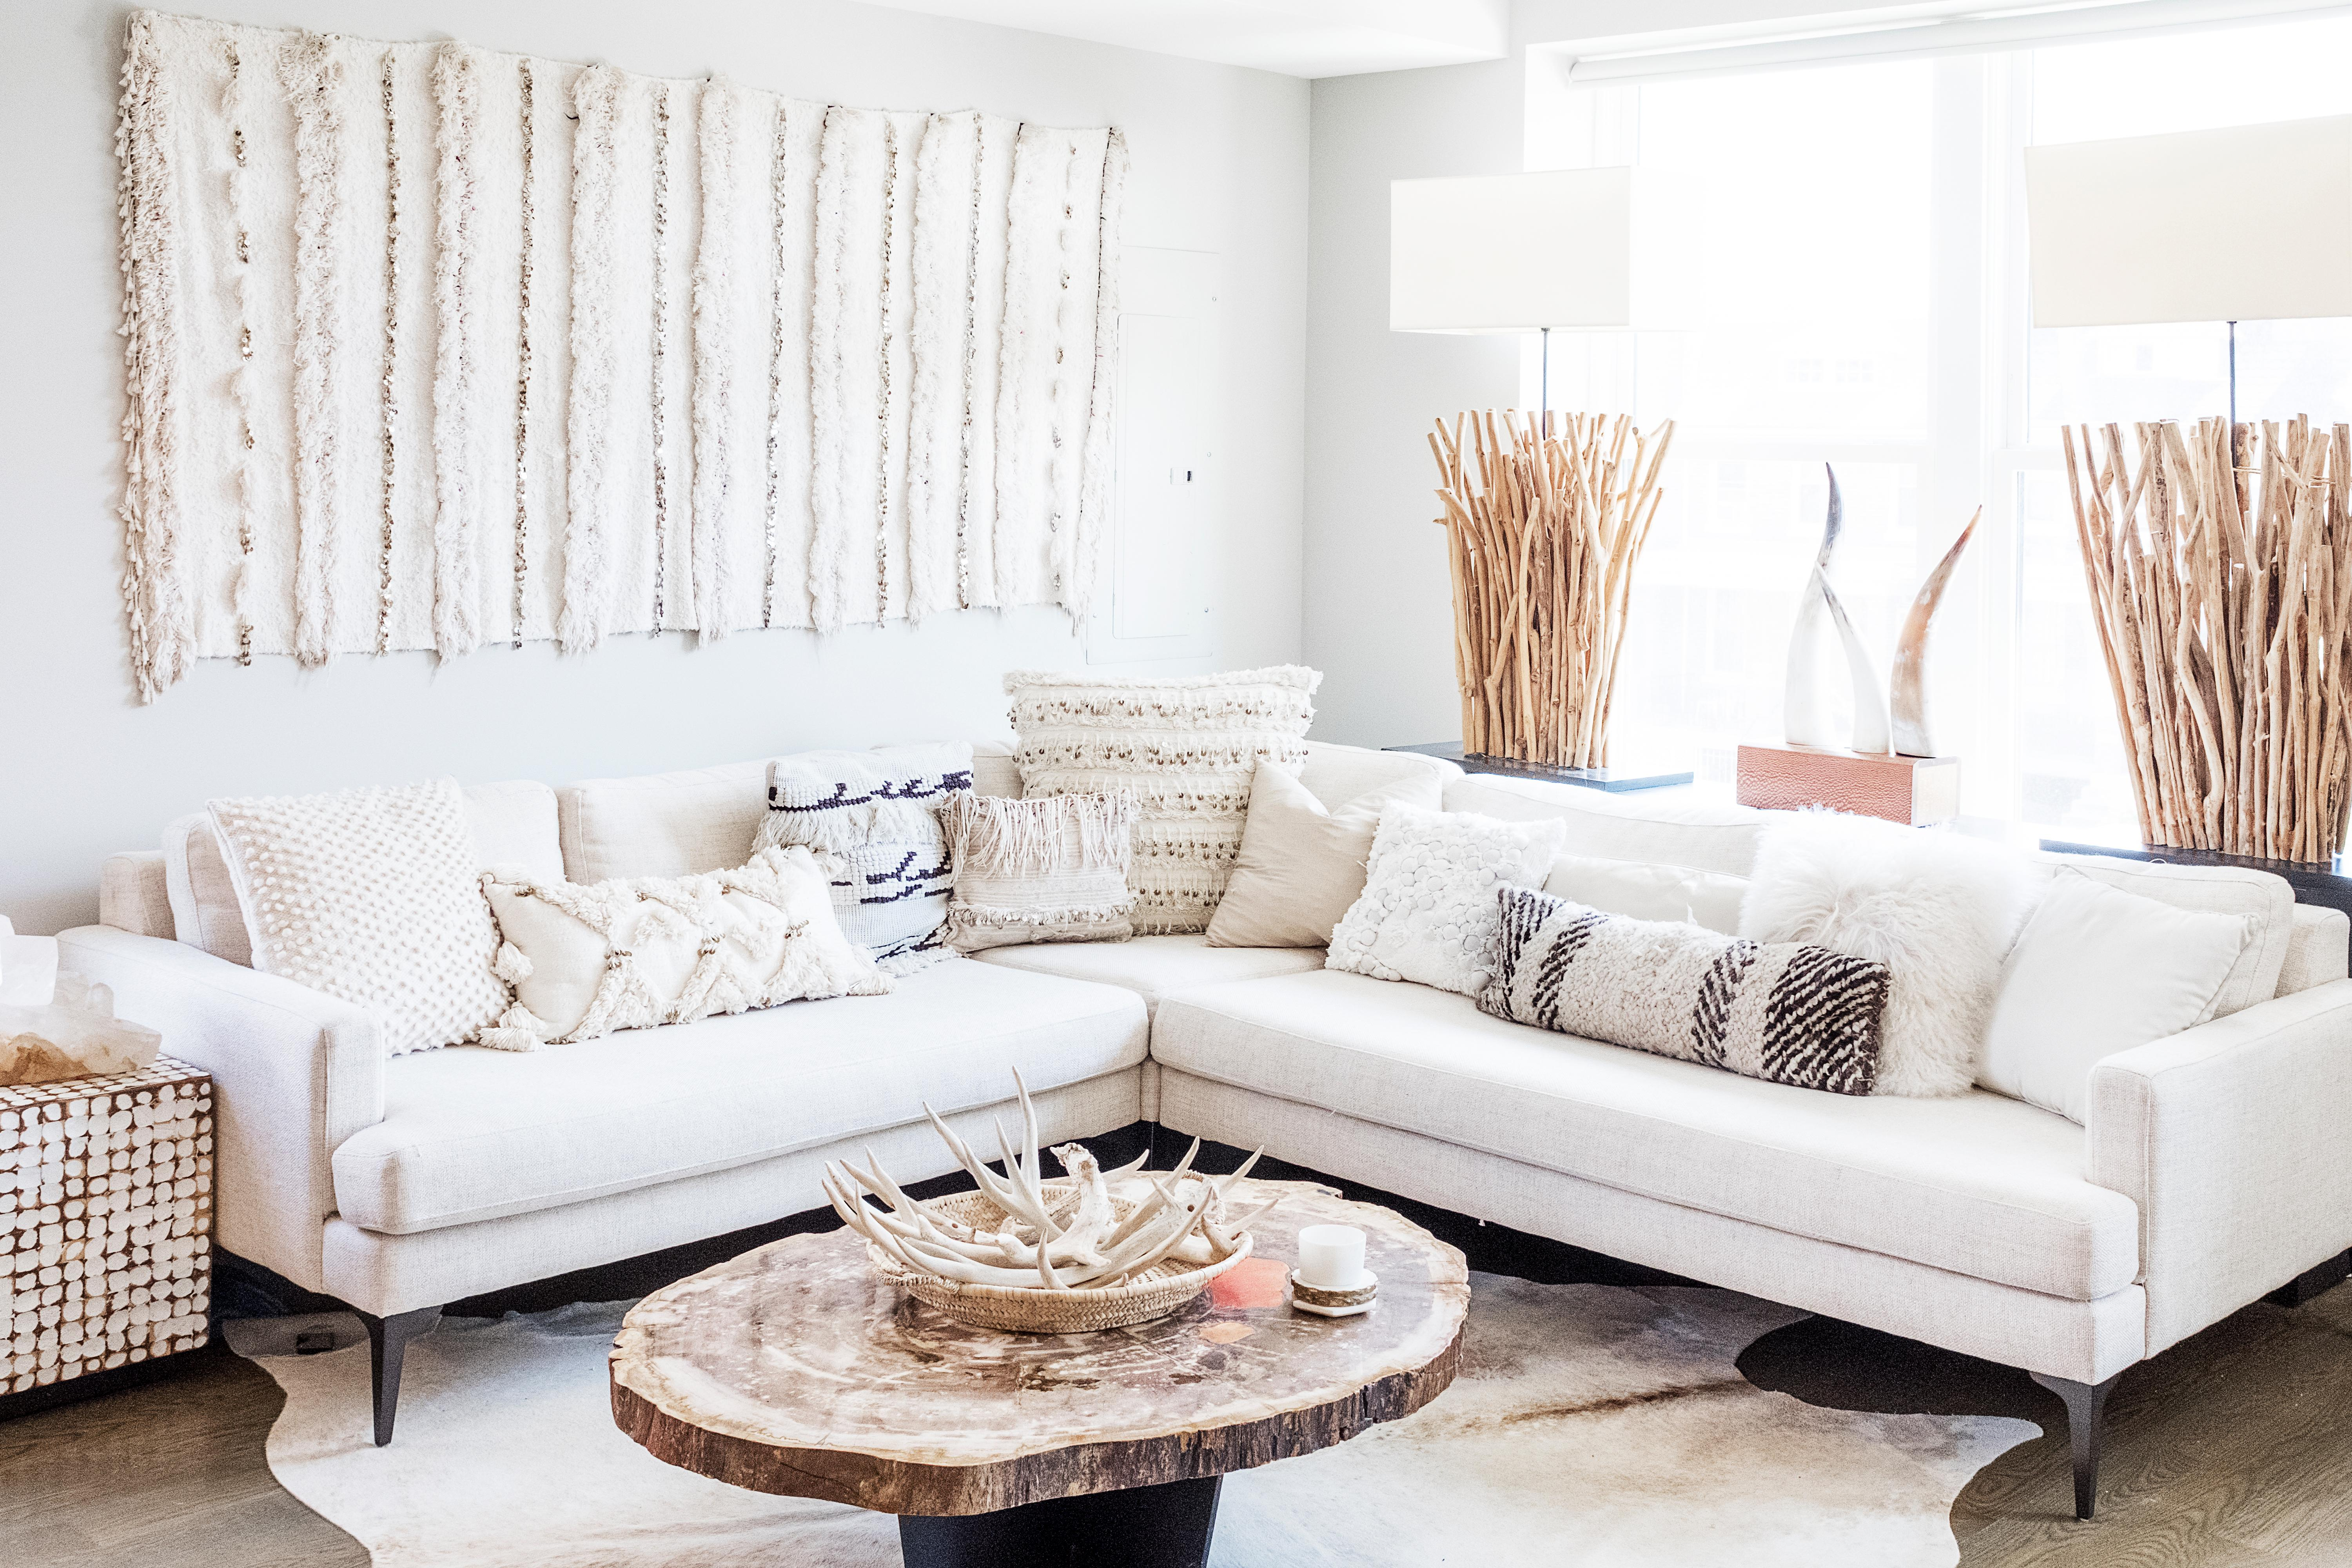 You can change up the styling of your couch each season with little to no effort or expense. (Image: Ashley Hafstead)